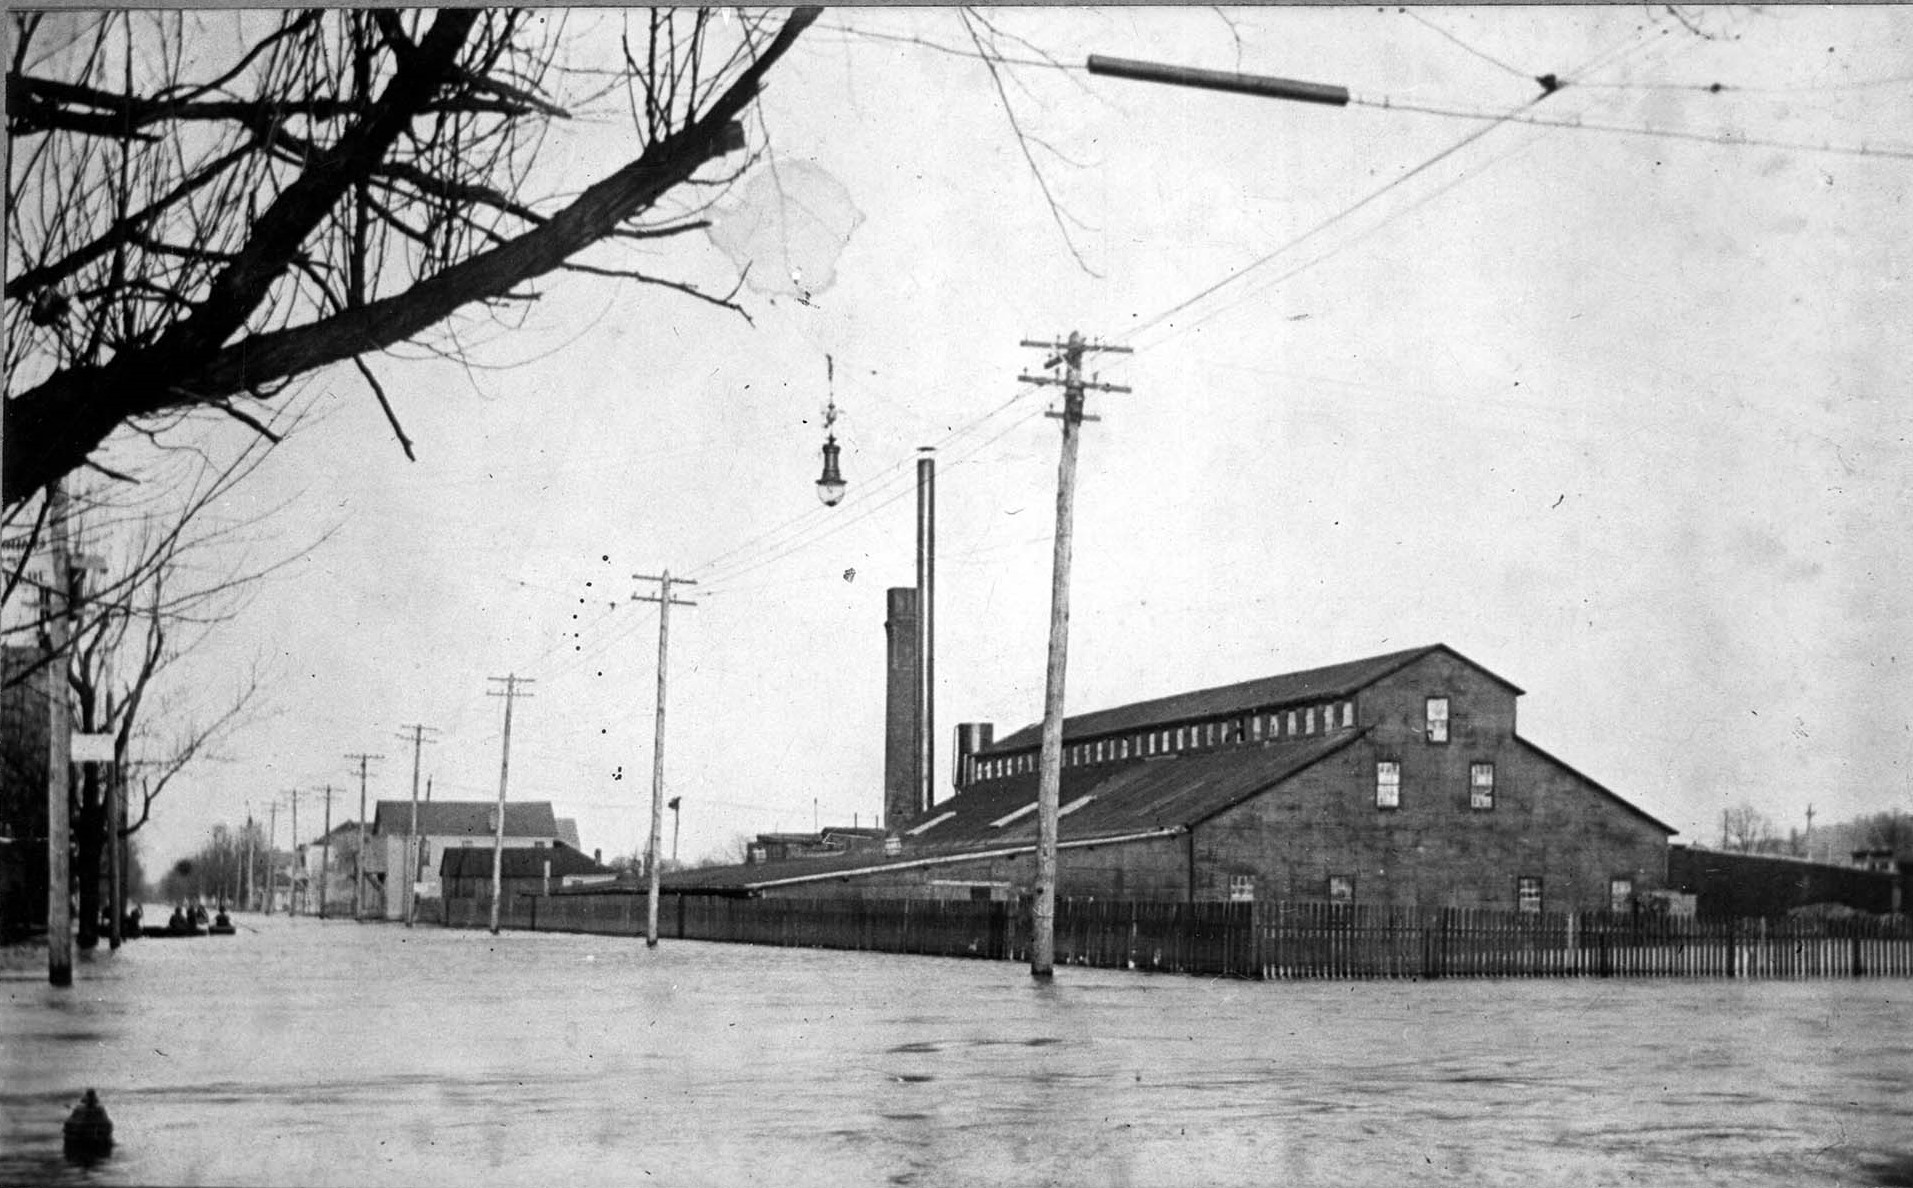 The only known photograph of the Hartzell Handle factory, seen here in the Flood of 1913. Image courtesy of Marshall University Special Collections.